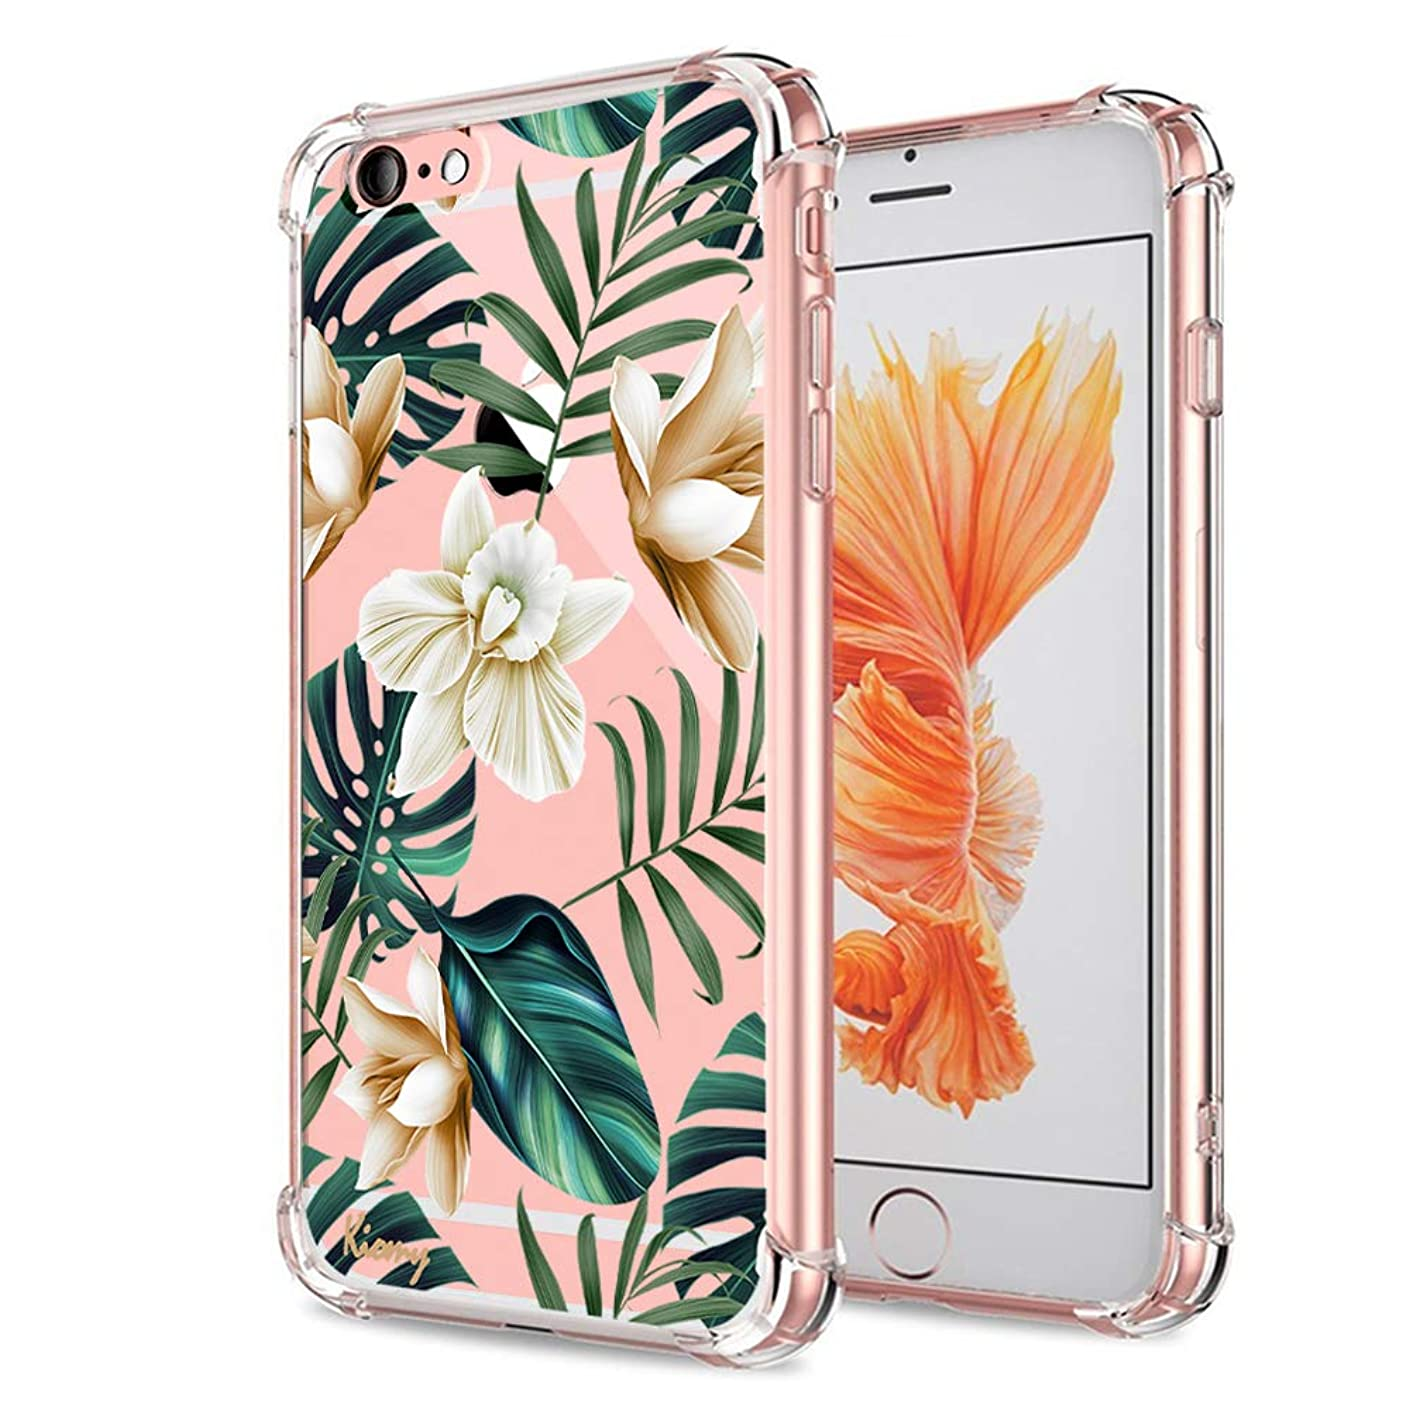 iPhone 6S Case, KIOMY Ultra Crystal Clear Case with Design Cute Palm Floral Texture Bumper Shockproof Protective Case for iPhone 6 6S 4.7 Inch Flexible Soft Cover Gel Silicone Bumper Corners